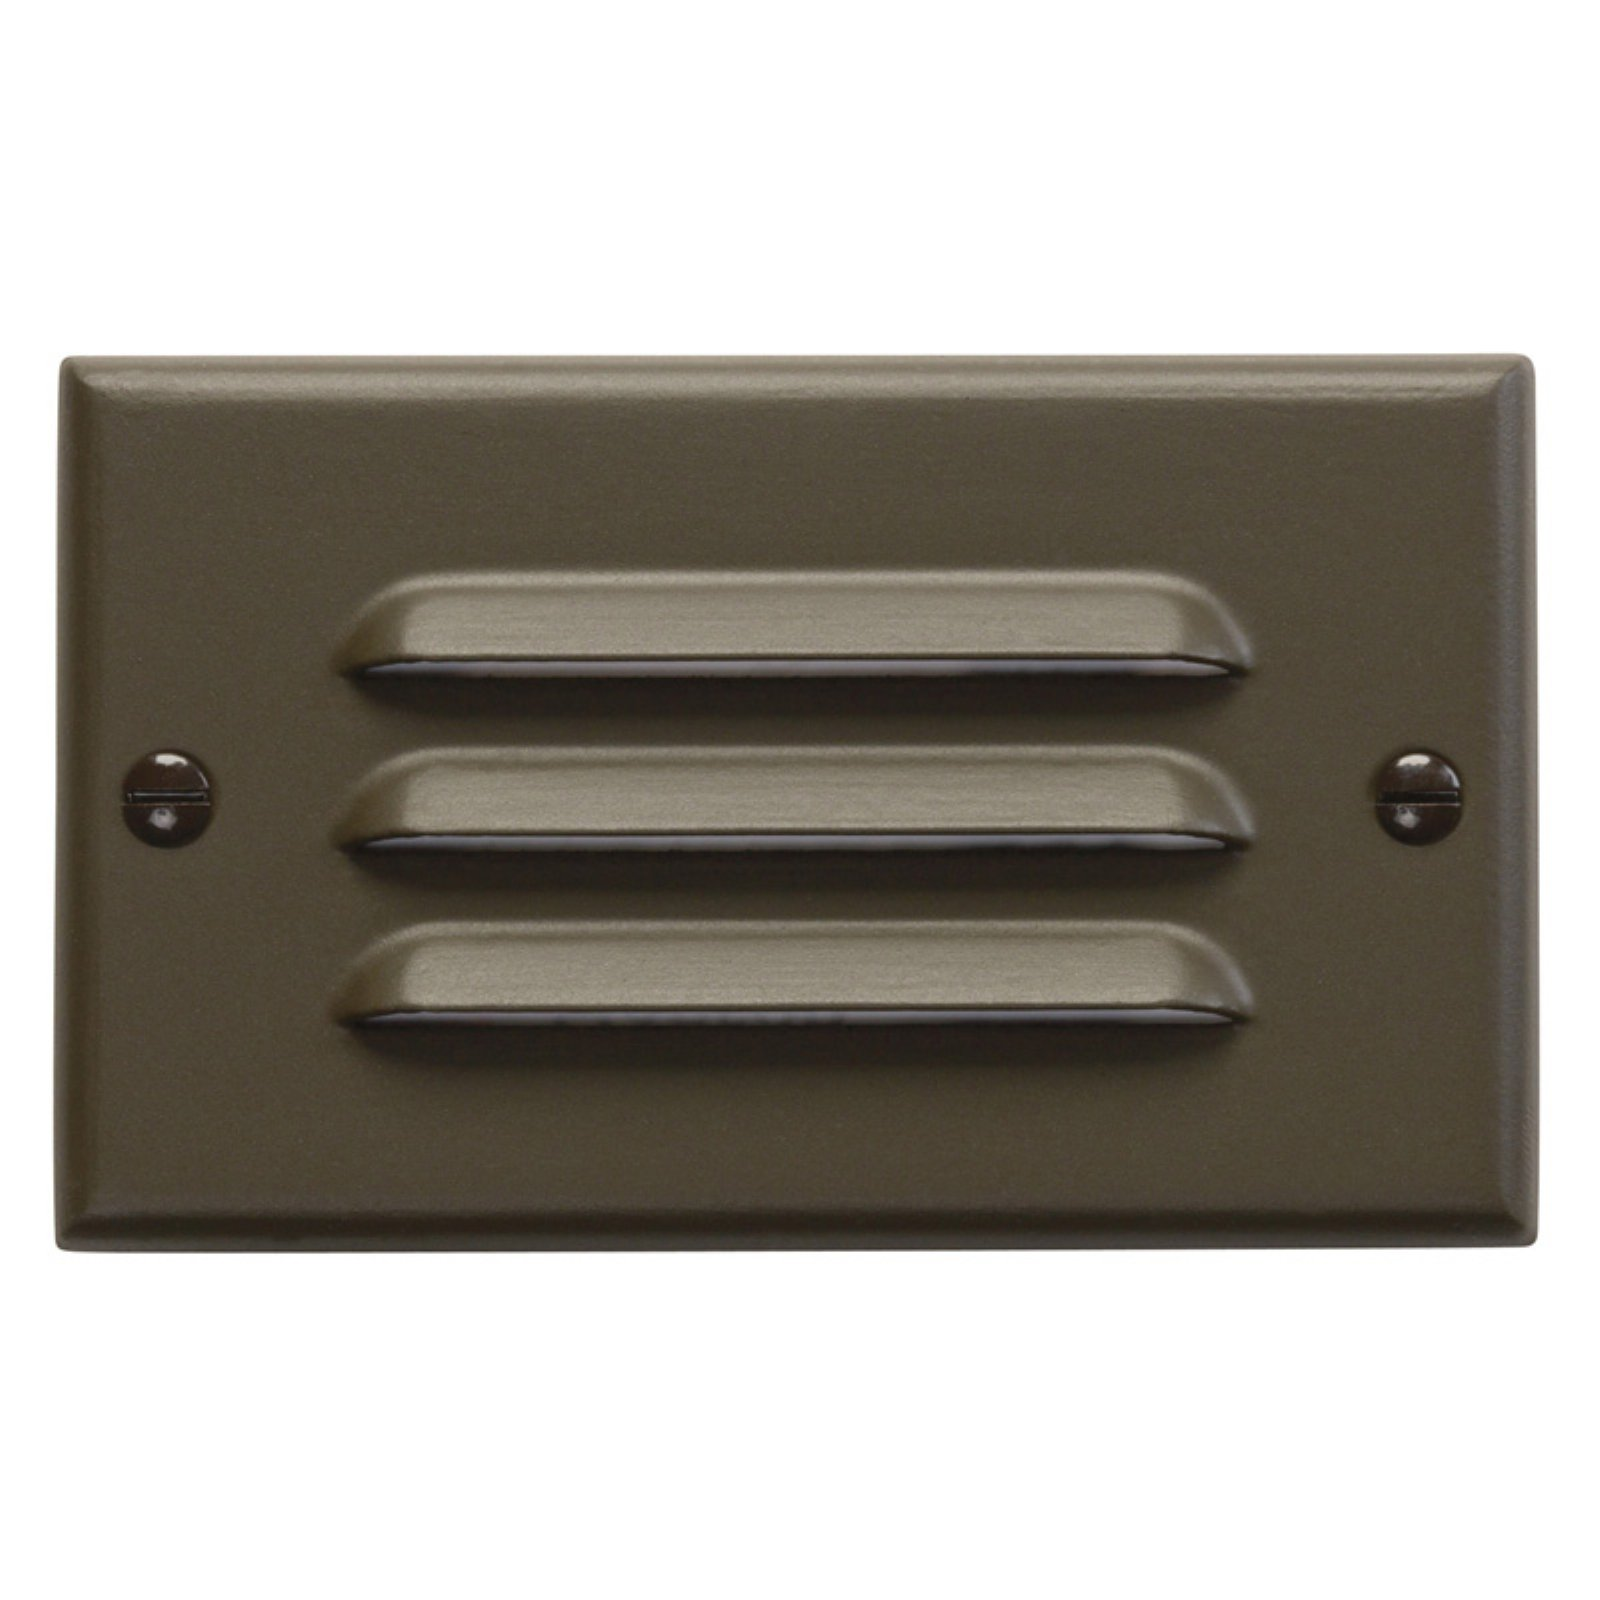 Kichler Step and Hall Light 12600 Cabinet Fixture-Misc Light - 1.5 in.